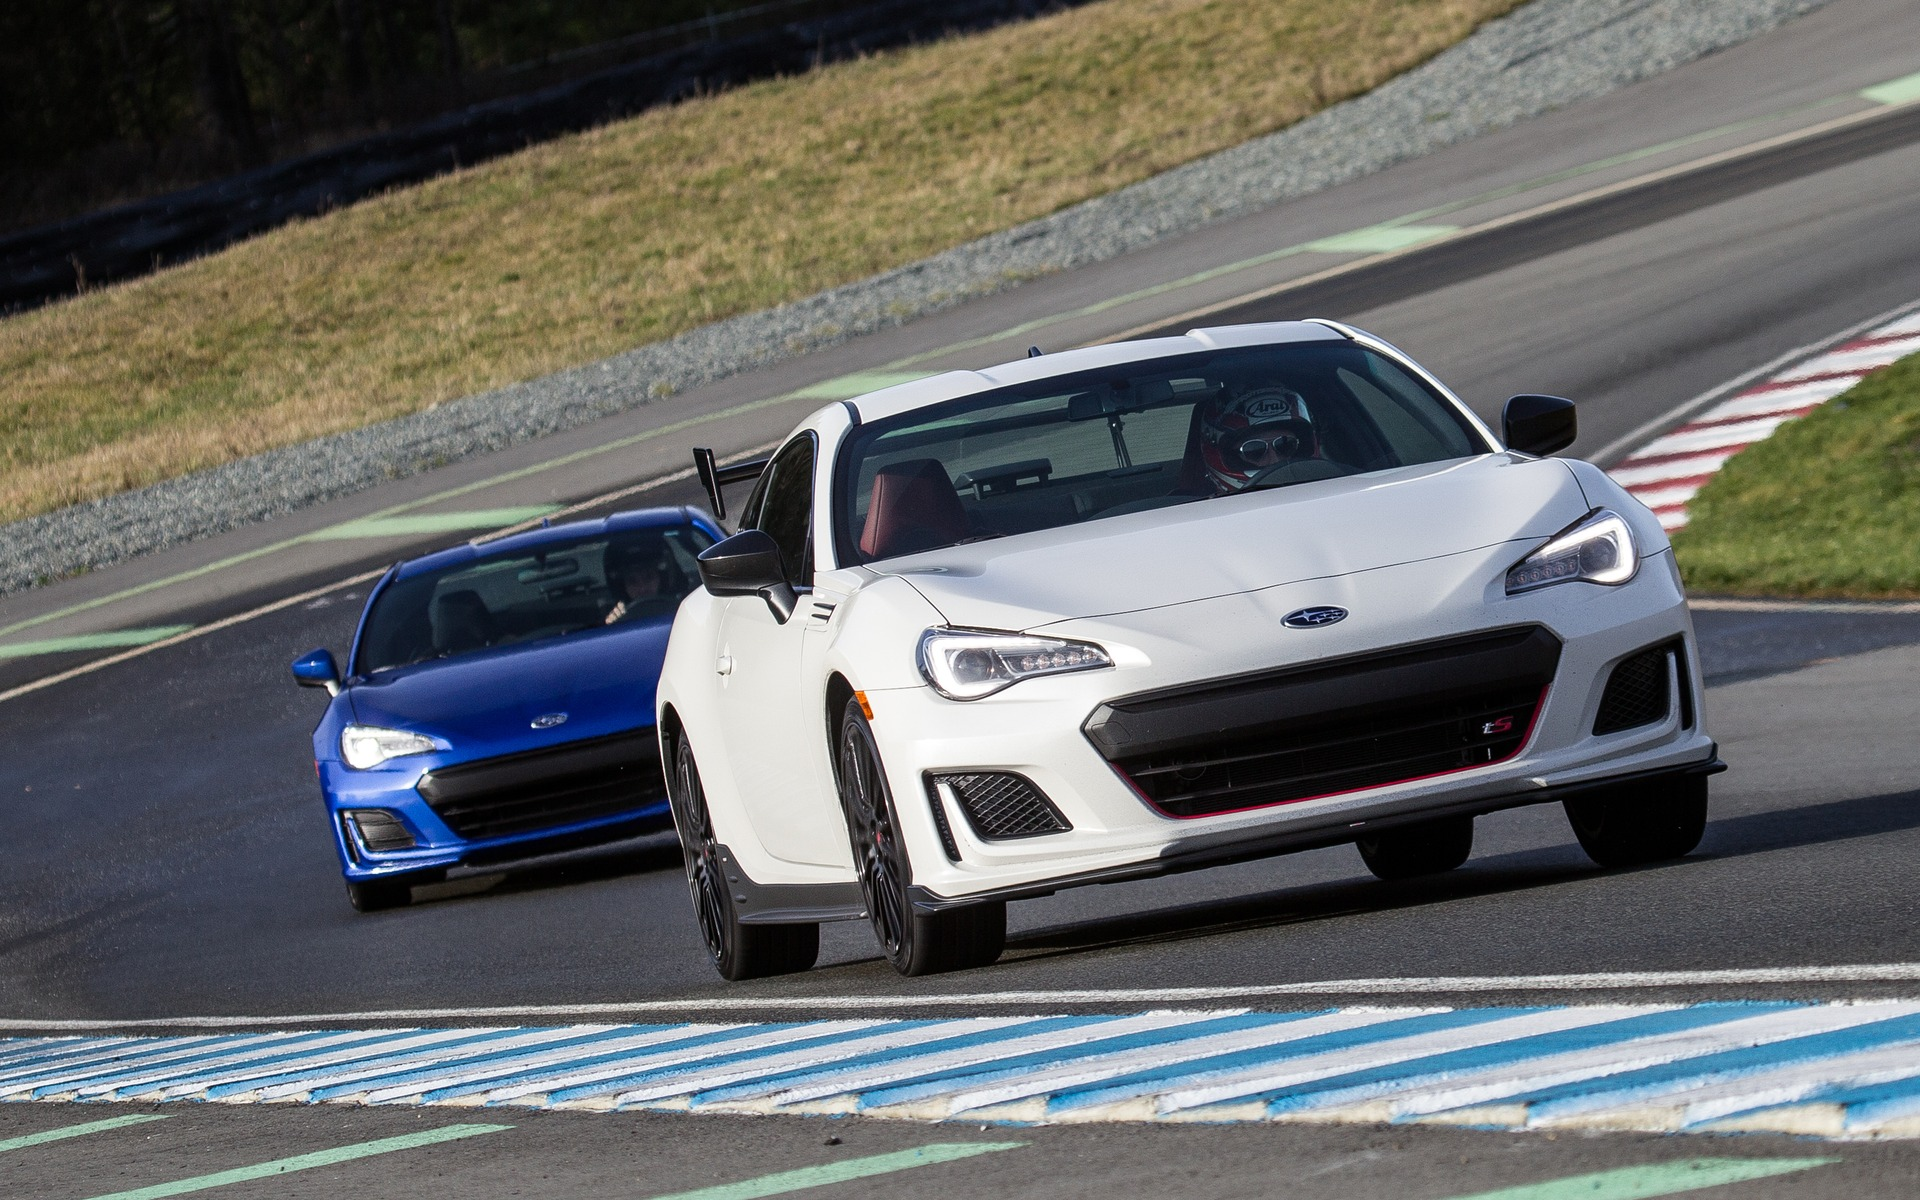 2018 Subaru BRZ tS: Better, Faster and More Exclusive ...